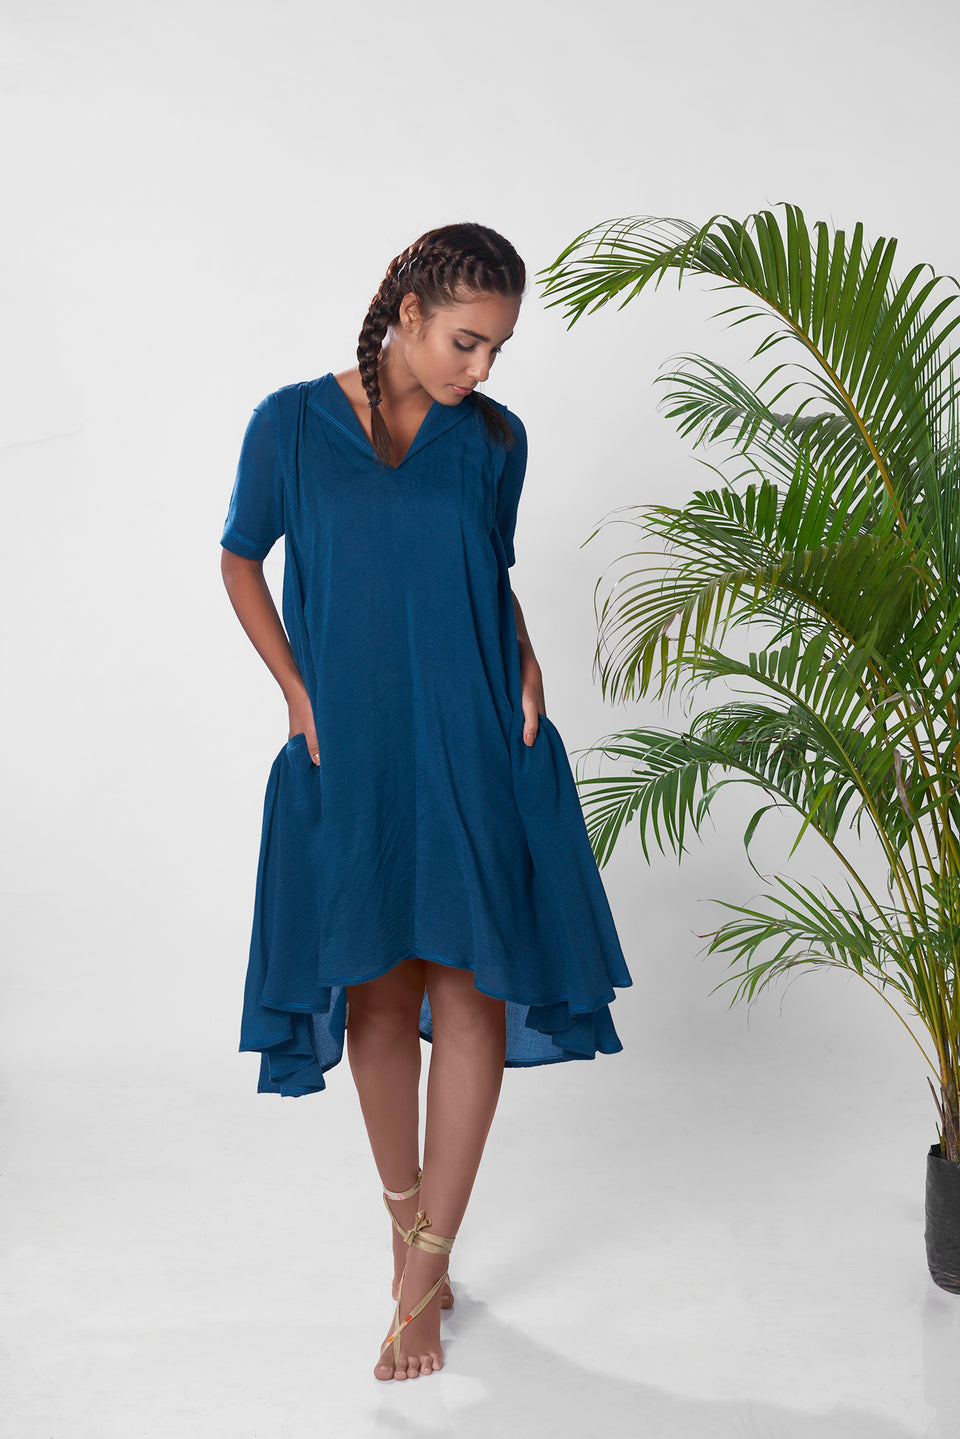 The Himachal Asymmetric Dress in Teal